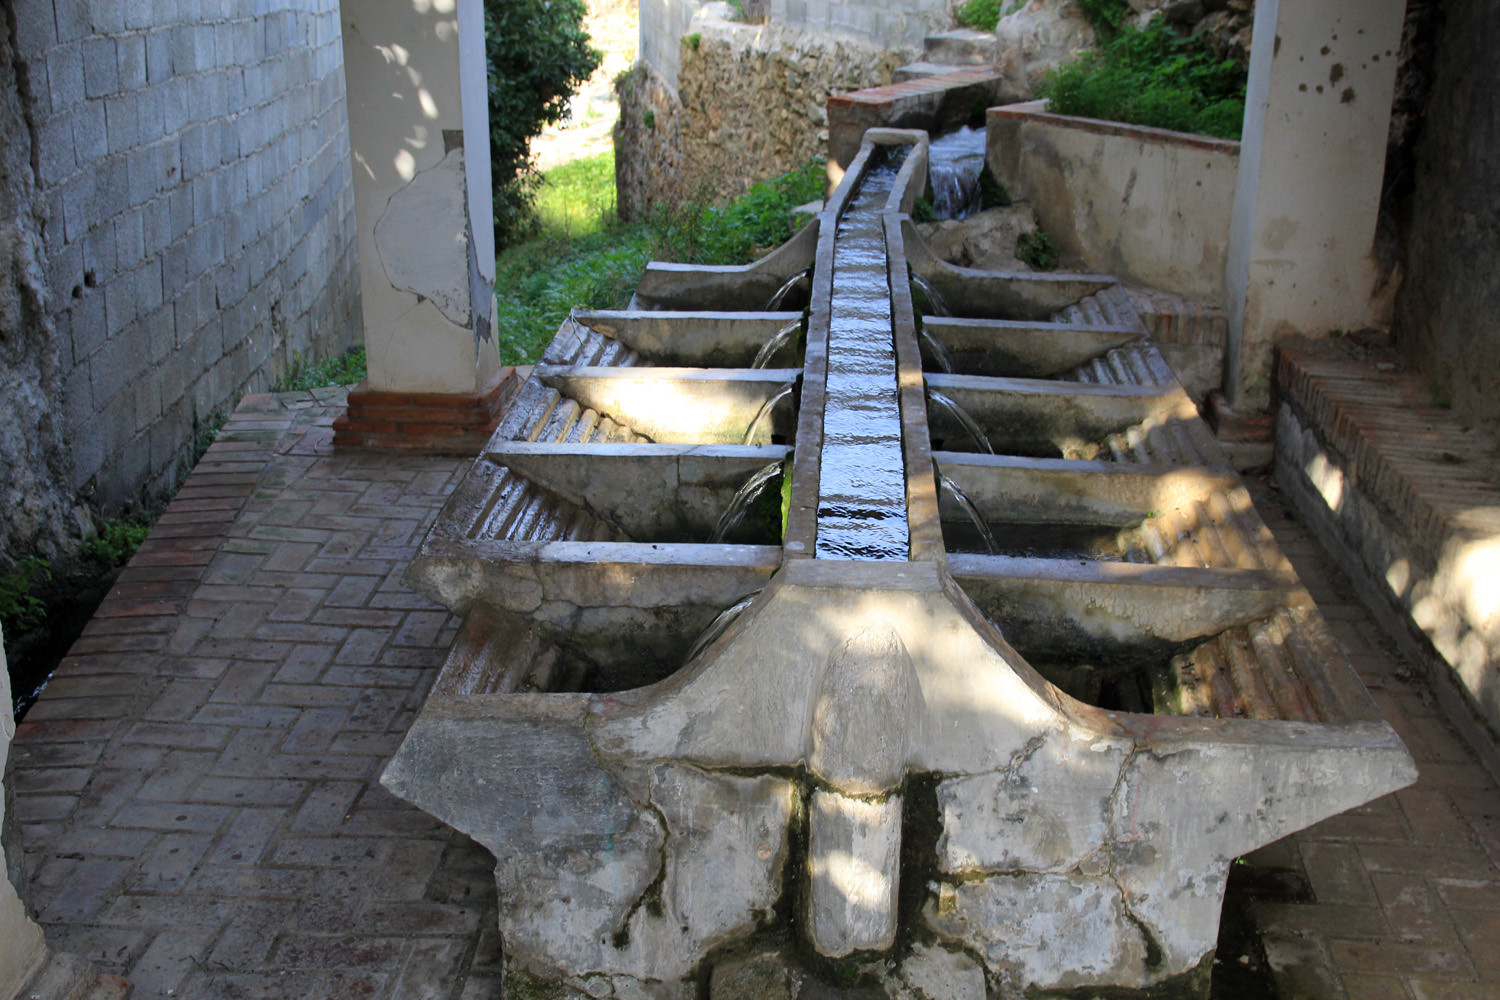 The Washing Sinks of Béznar